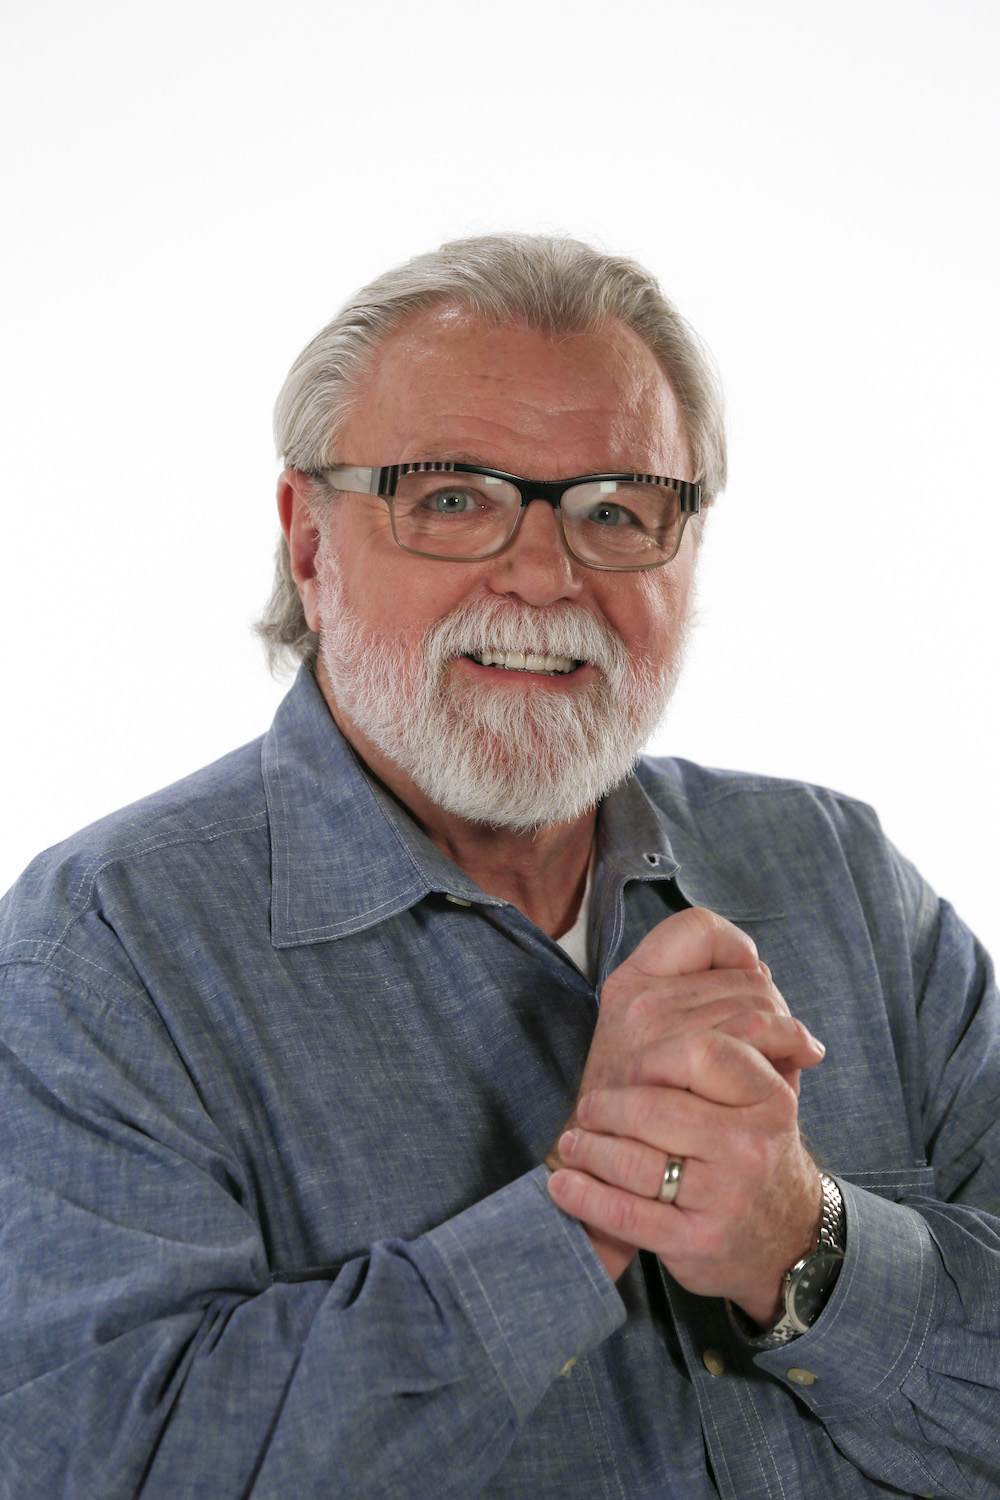 bobby jensen, tv personality what intrigued me about the javacycle concept was taking an innocuous byproduct and turning it into a remarkable product.  an organic fertilizer that has no offensive smell and works amazing.